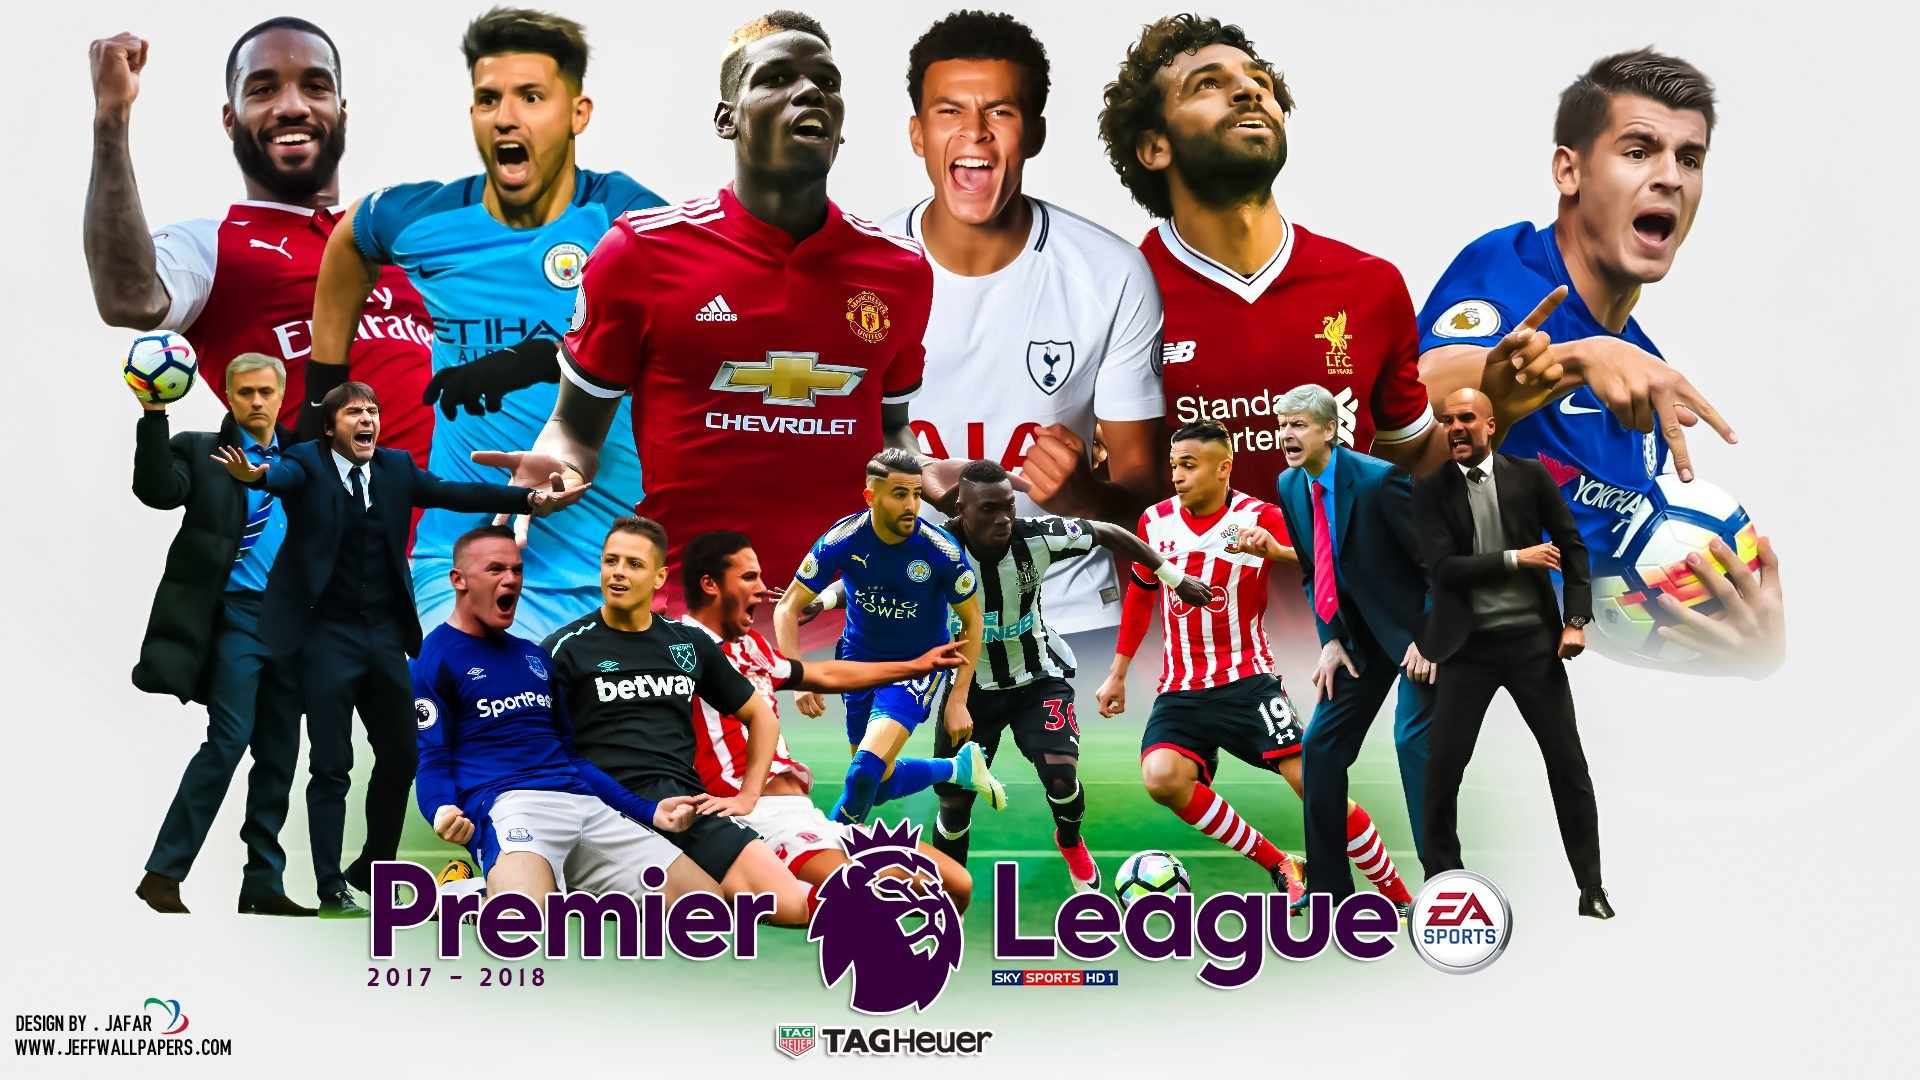 e69d768f70 ... als Fußball Teamsport PDF Katalog. Download · 1920x1080 PREMIER LEAGUE  WALLPAPER 2018. 1920x1080 PREMIER LEAGUE WALLPAPER 2018 · Download ·  1920x1080